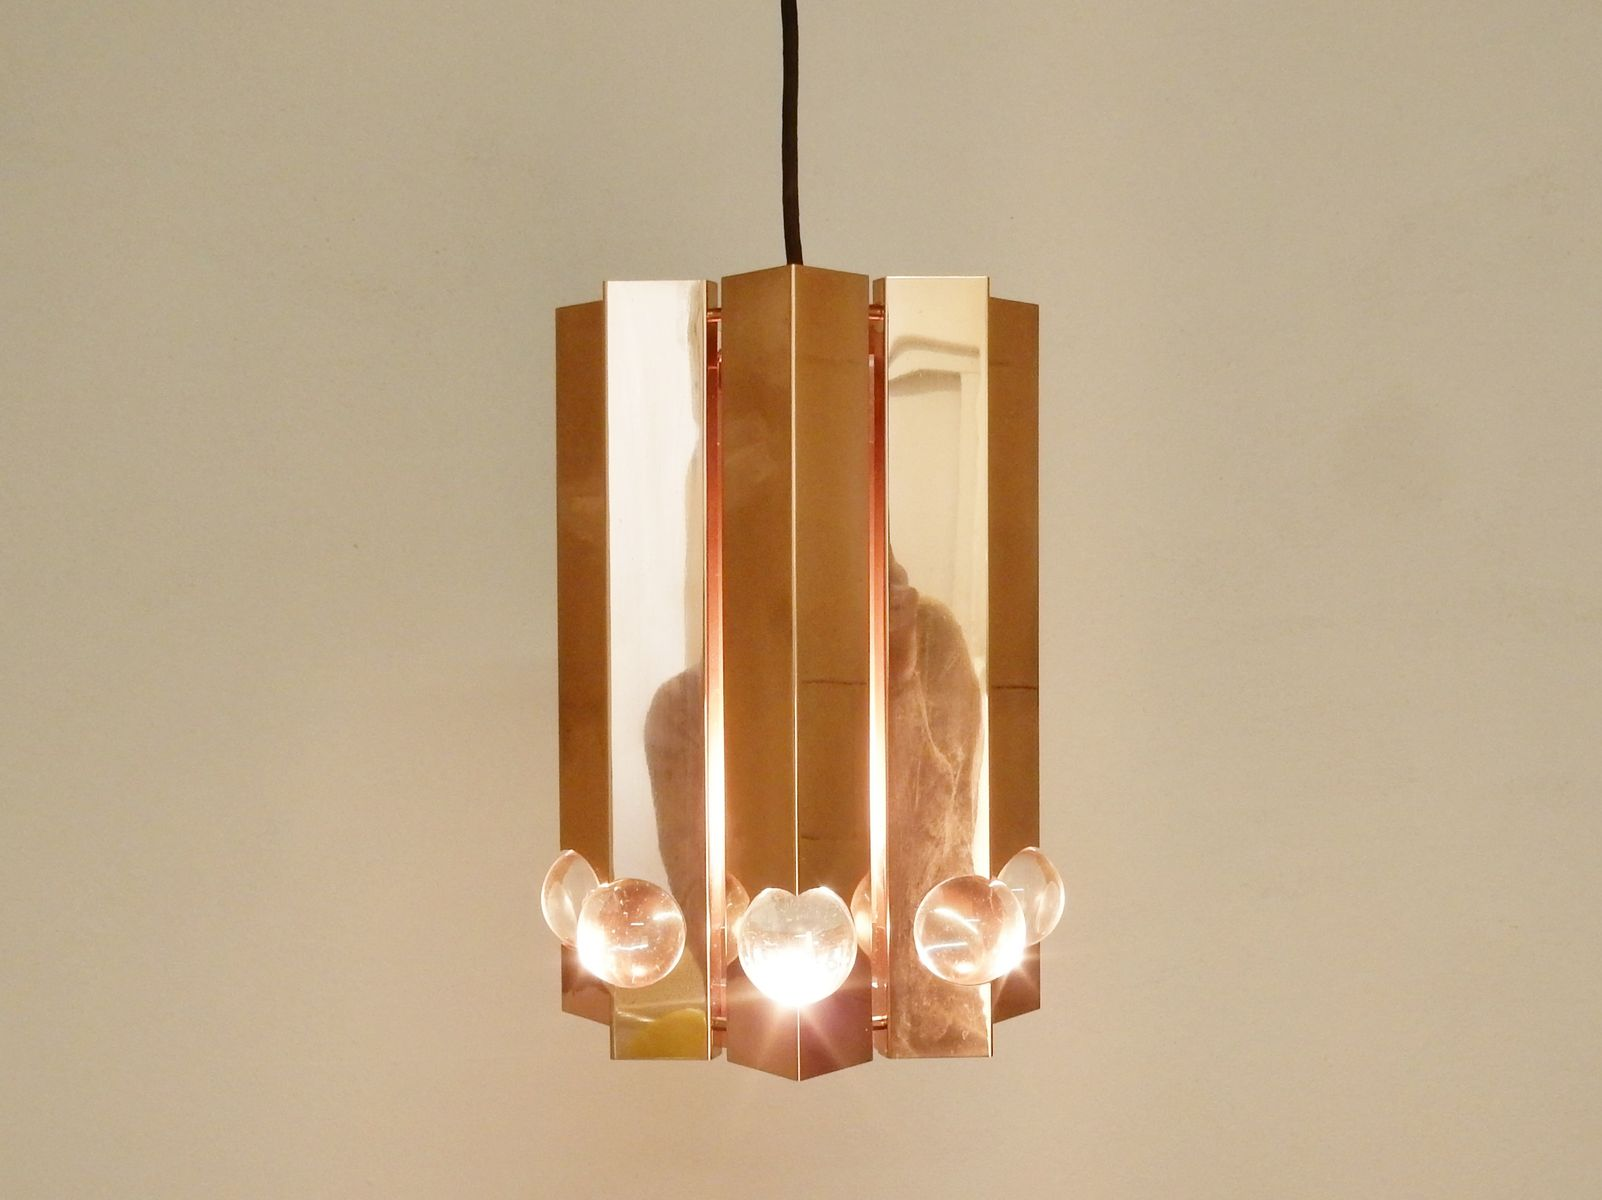 copper pendant lighting. Polished Copper Pendant Light By Gebrüder Cosack, 1960s Lighting N